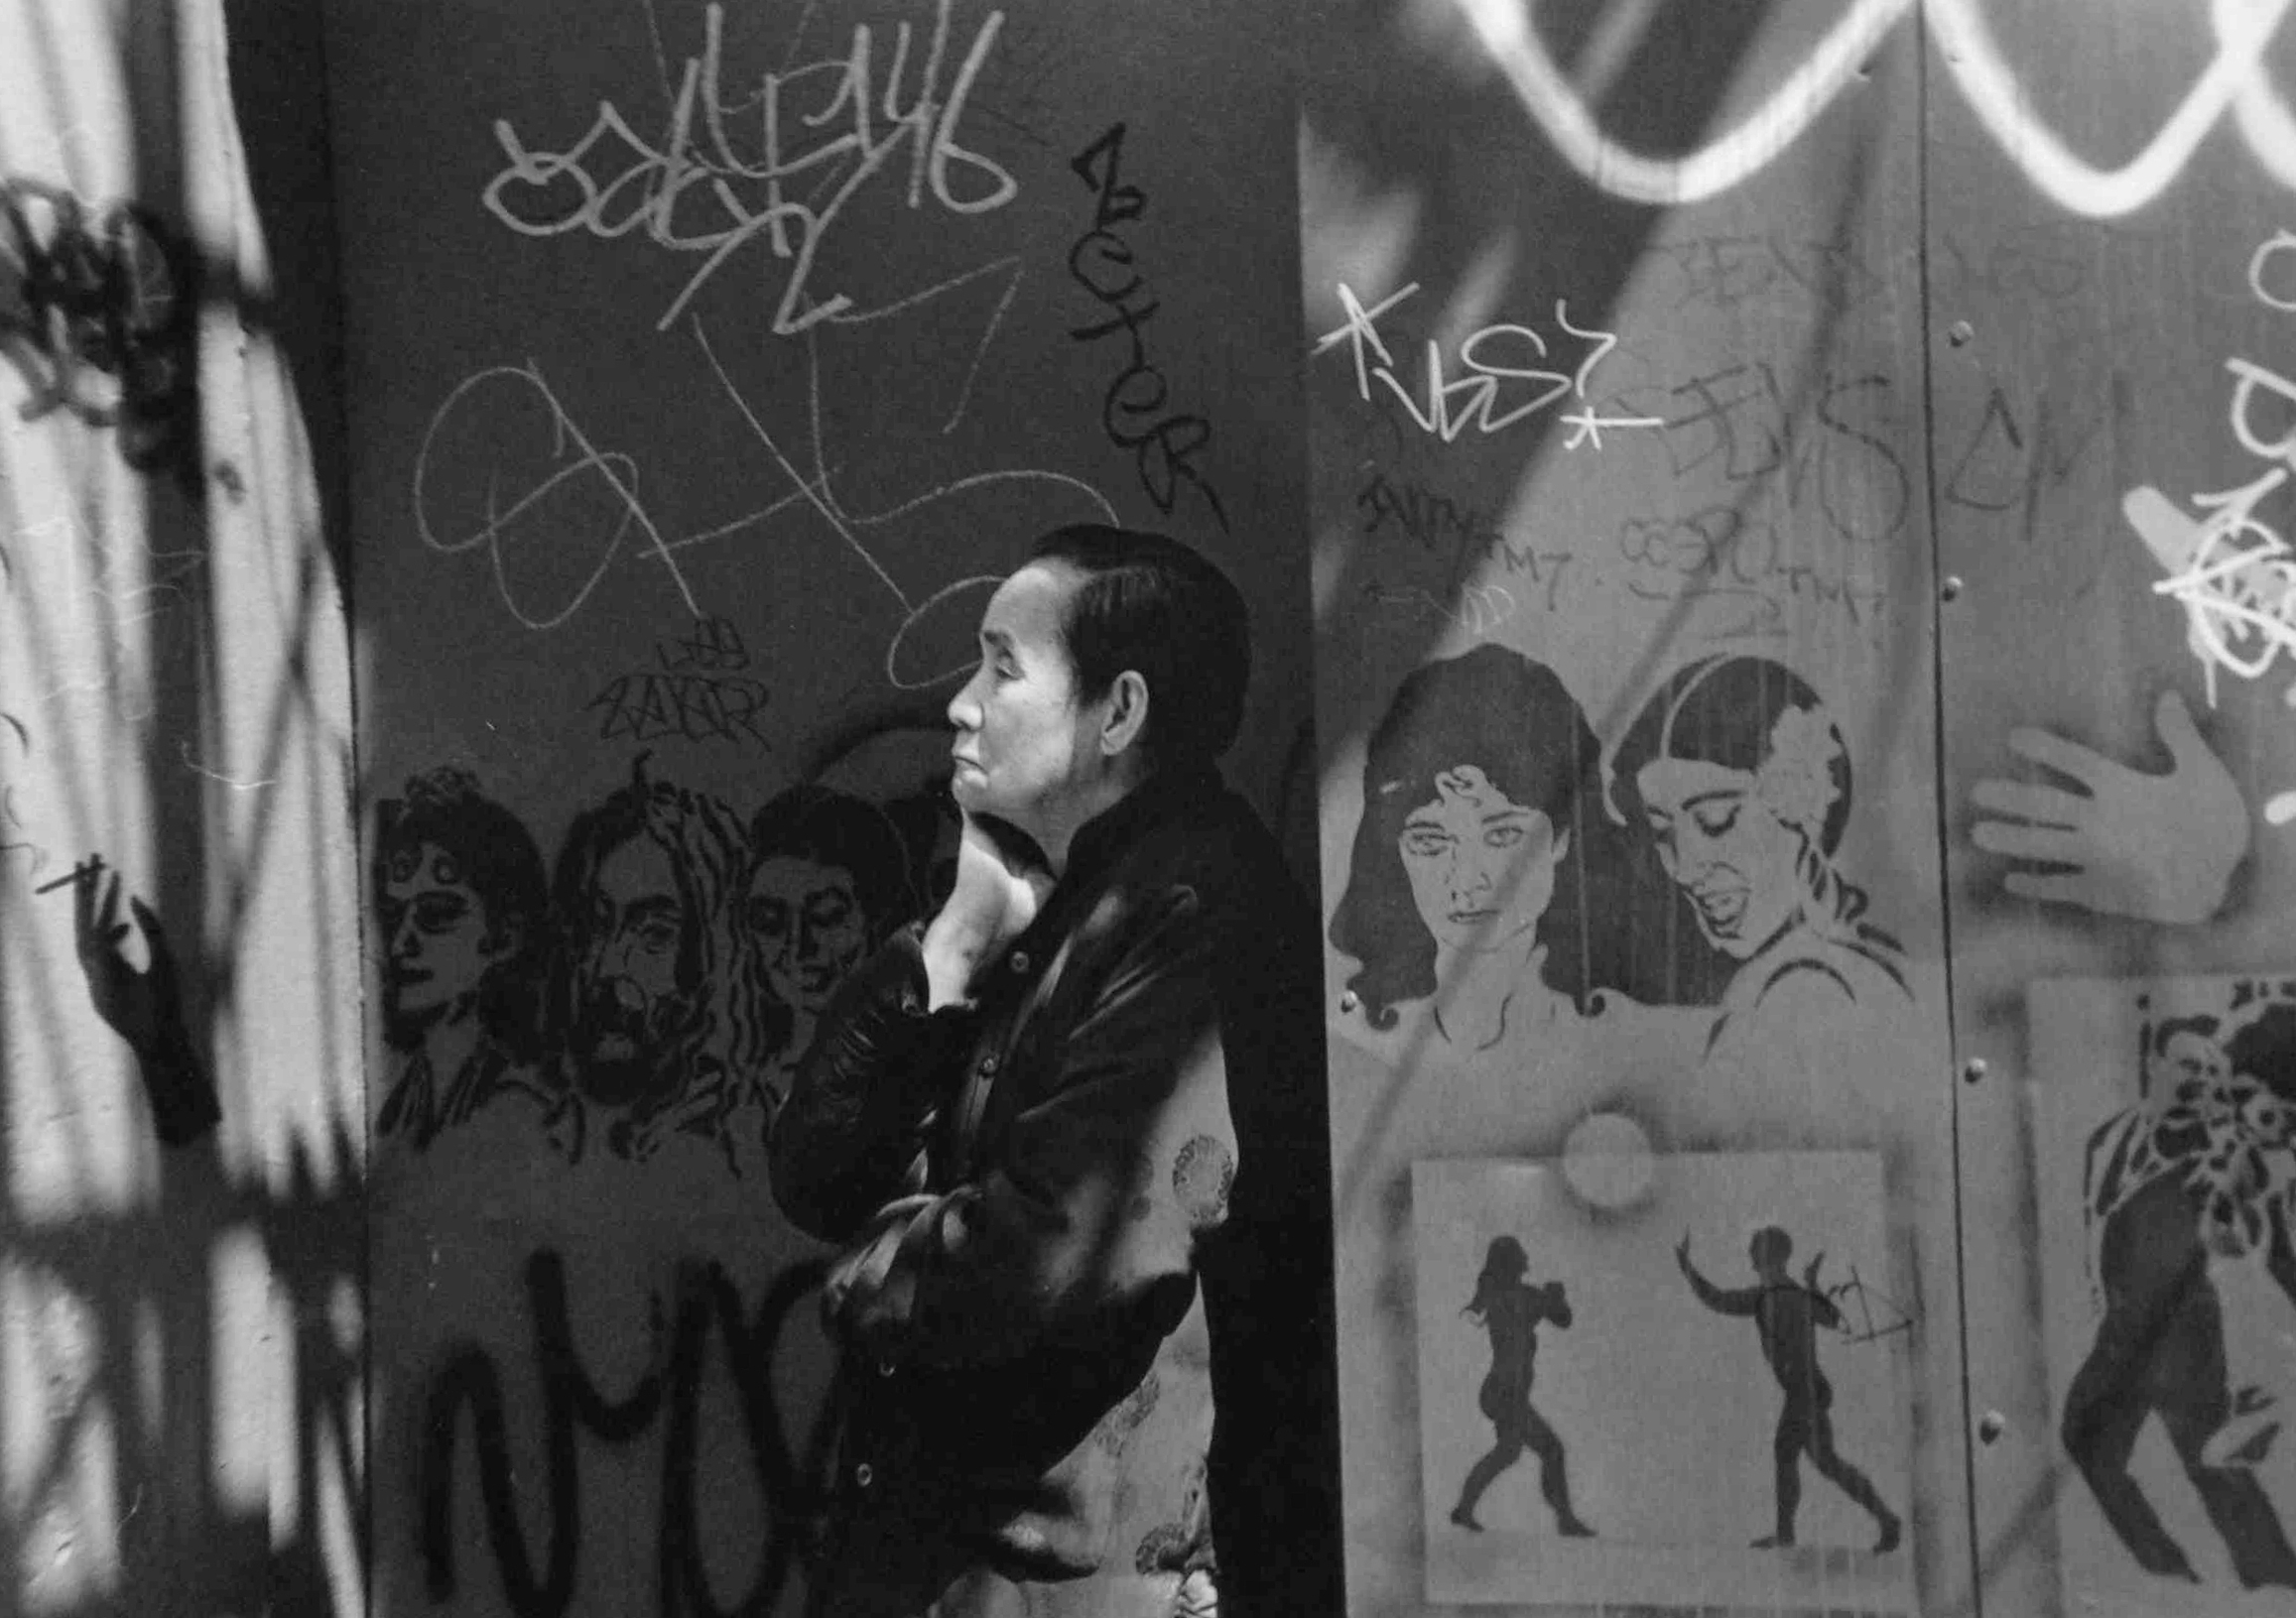 Woman on Mott Street with Graffiti, New York , 1995  Gelatin silver photograph.   11 7/8 x 17 3/4 inches